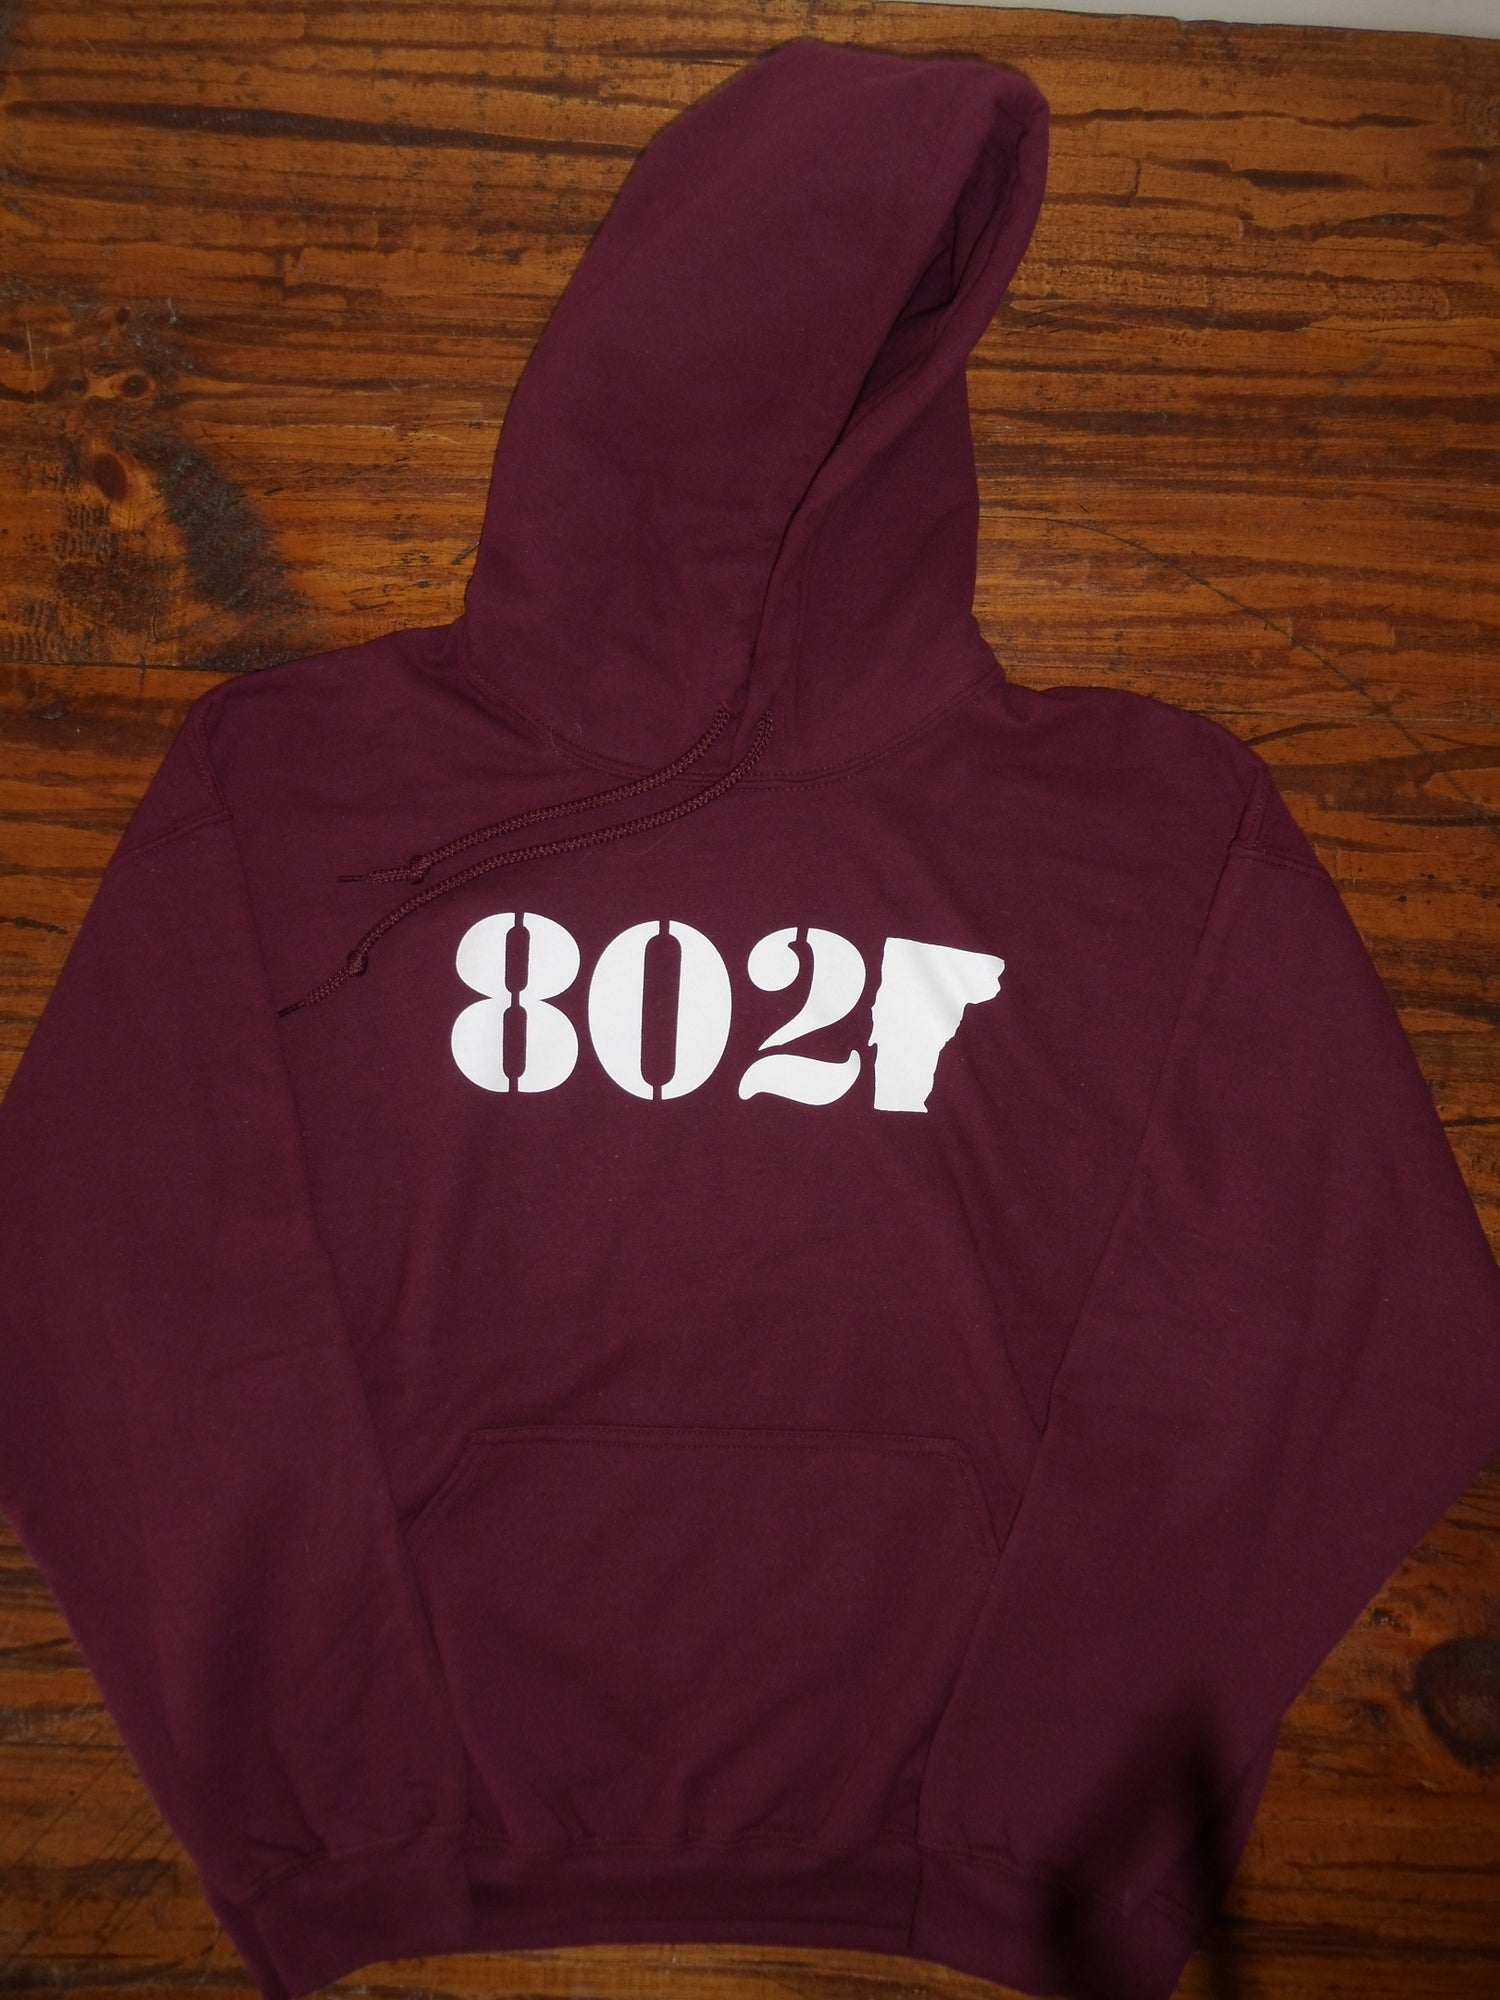 Image of 802 Classic Vermont Hooded Sweatshirt - 802 logo on Maroon Hoodie - Available in Kids & Adult Sizes